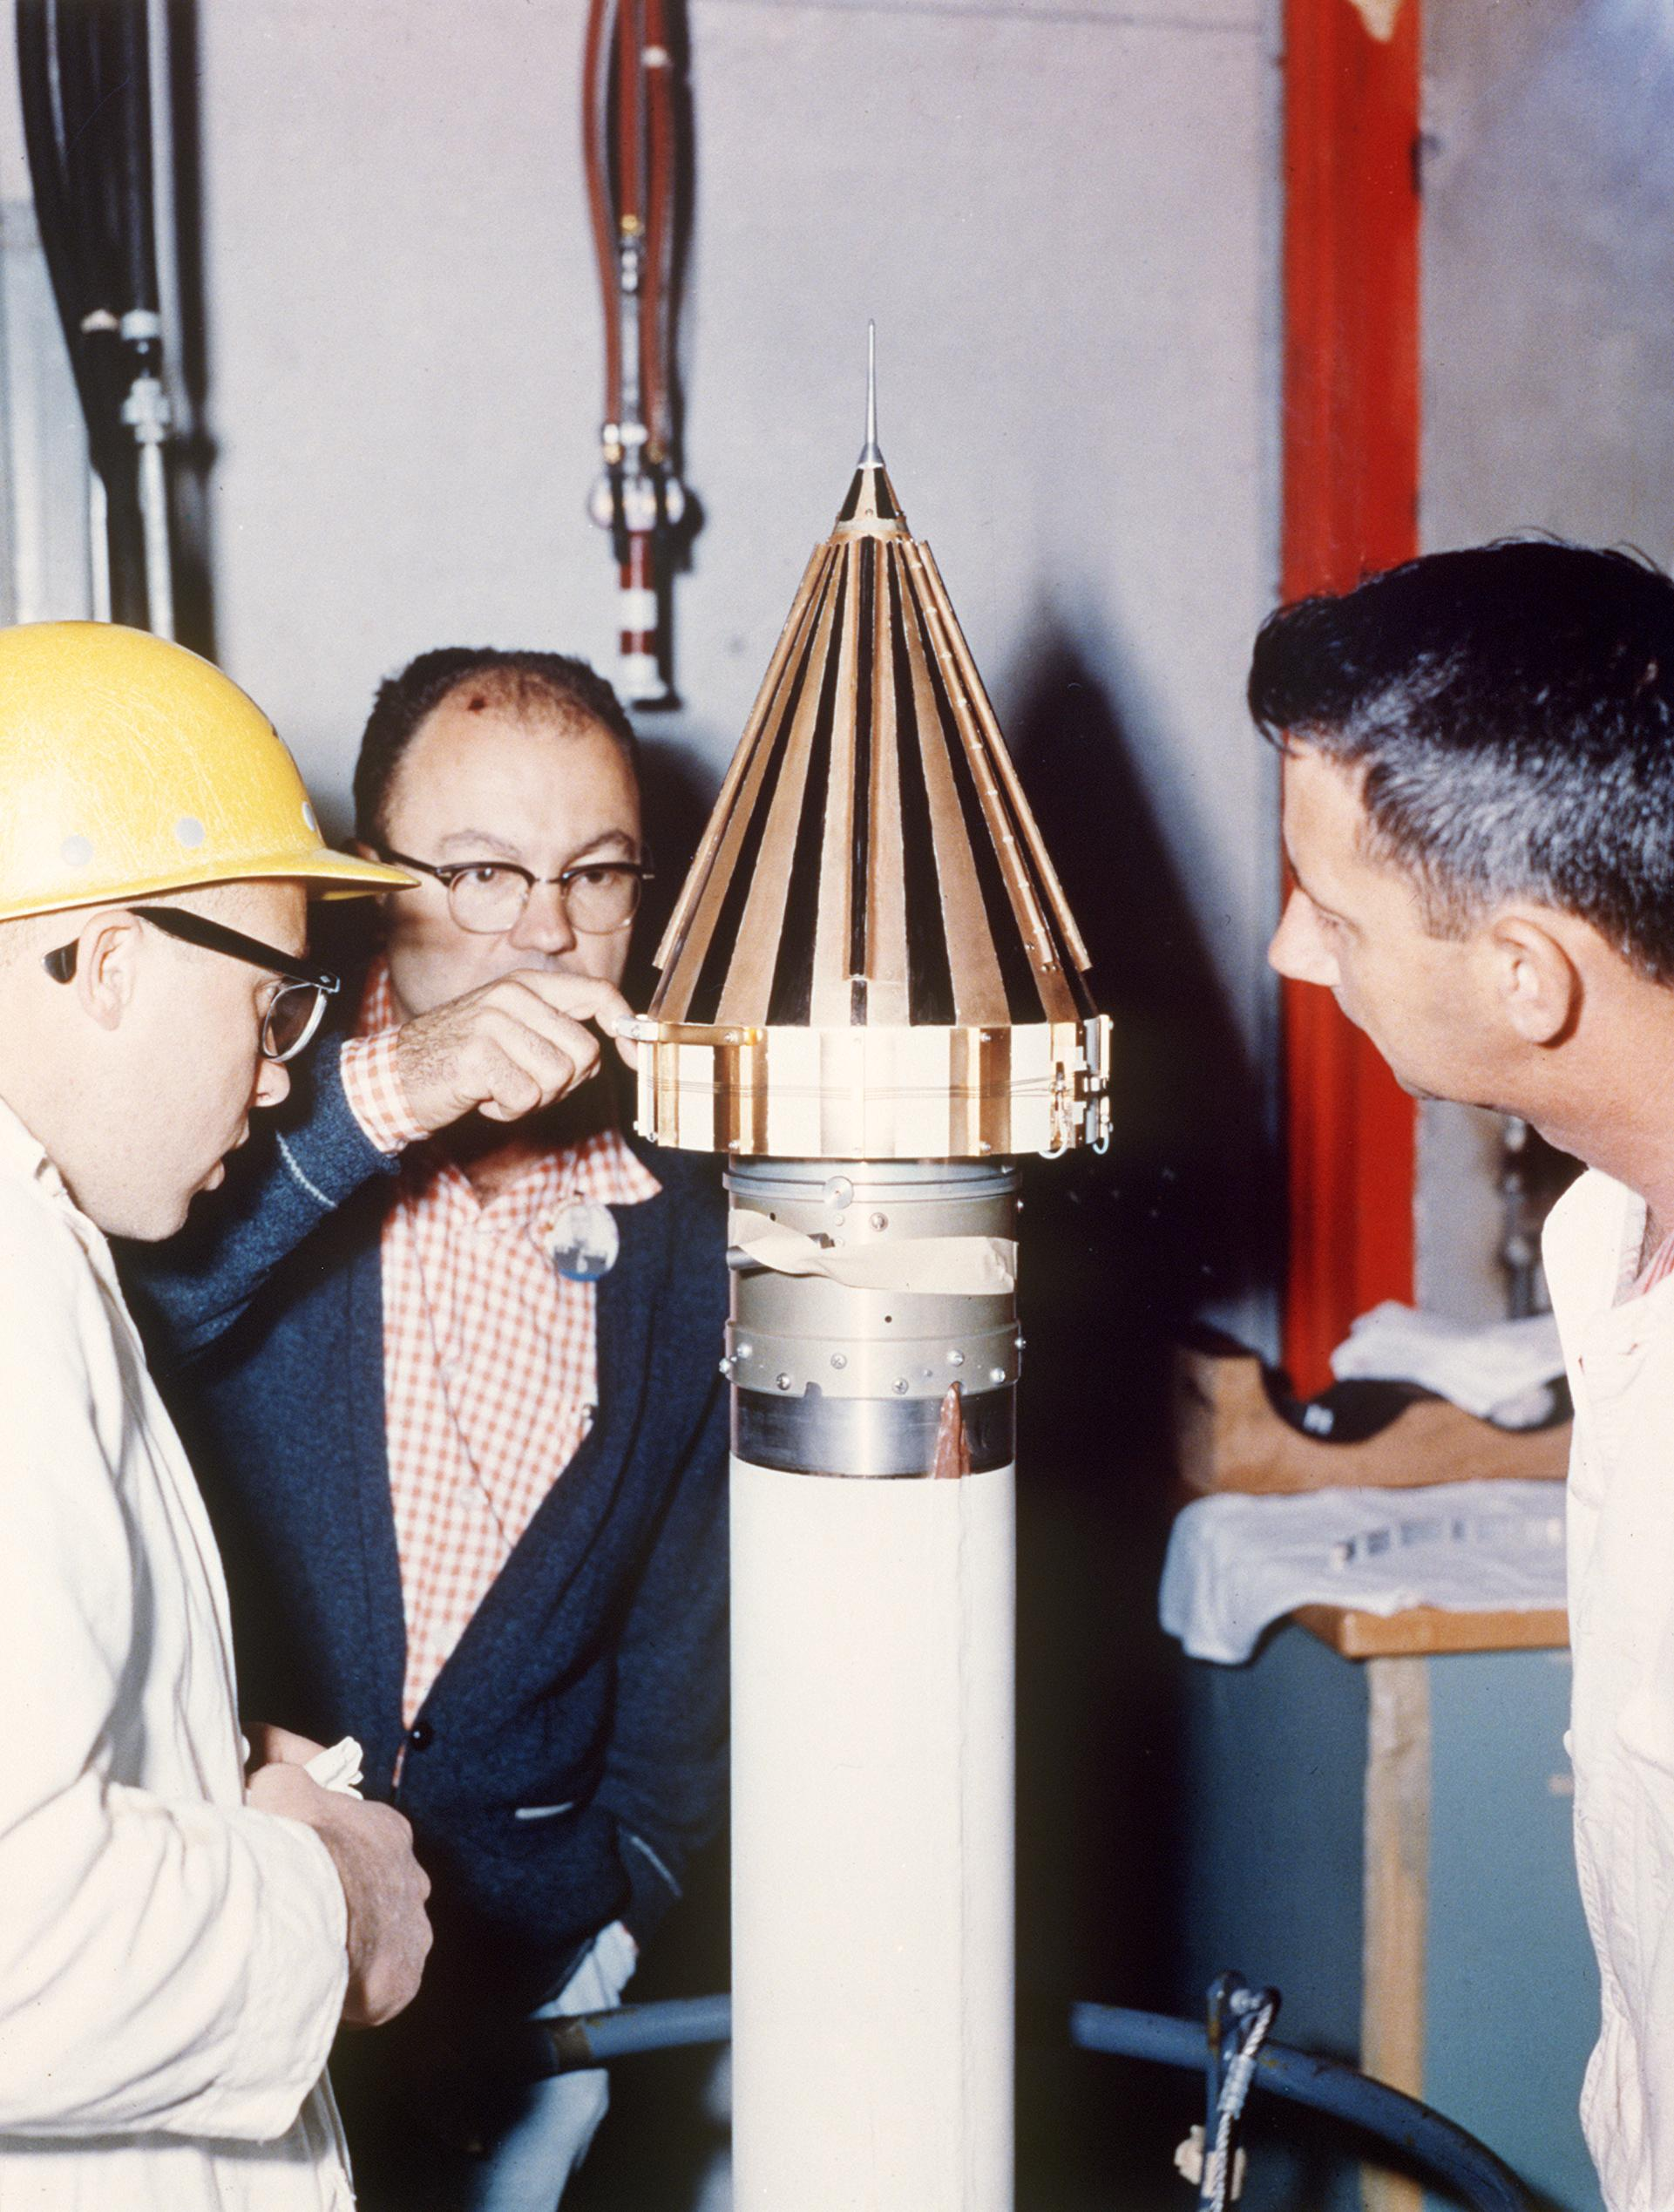 This image from March 2, 1959 shows engineers from NASAs Jet Propulsion Laboratory checking NASAs Pioneer 4 spacecraft.